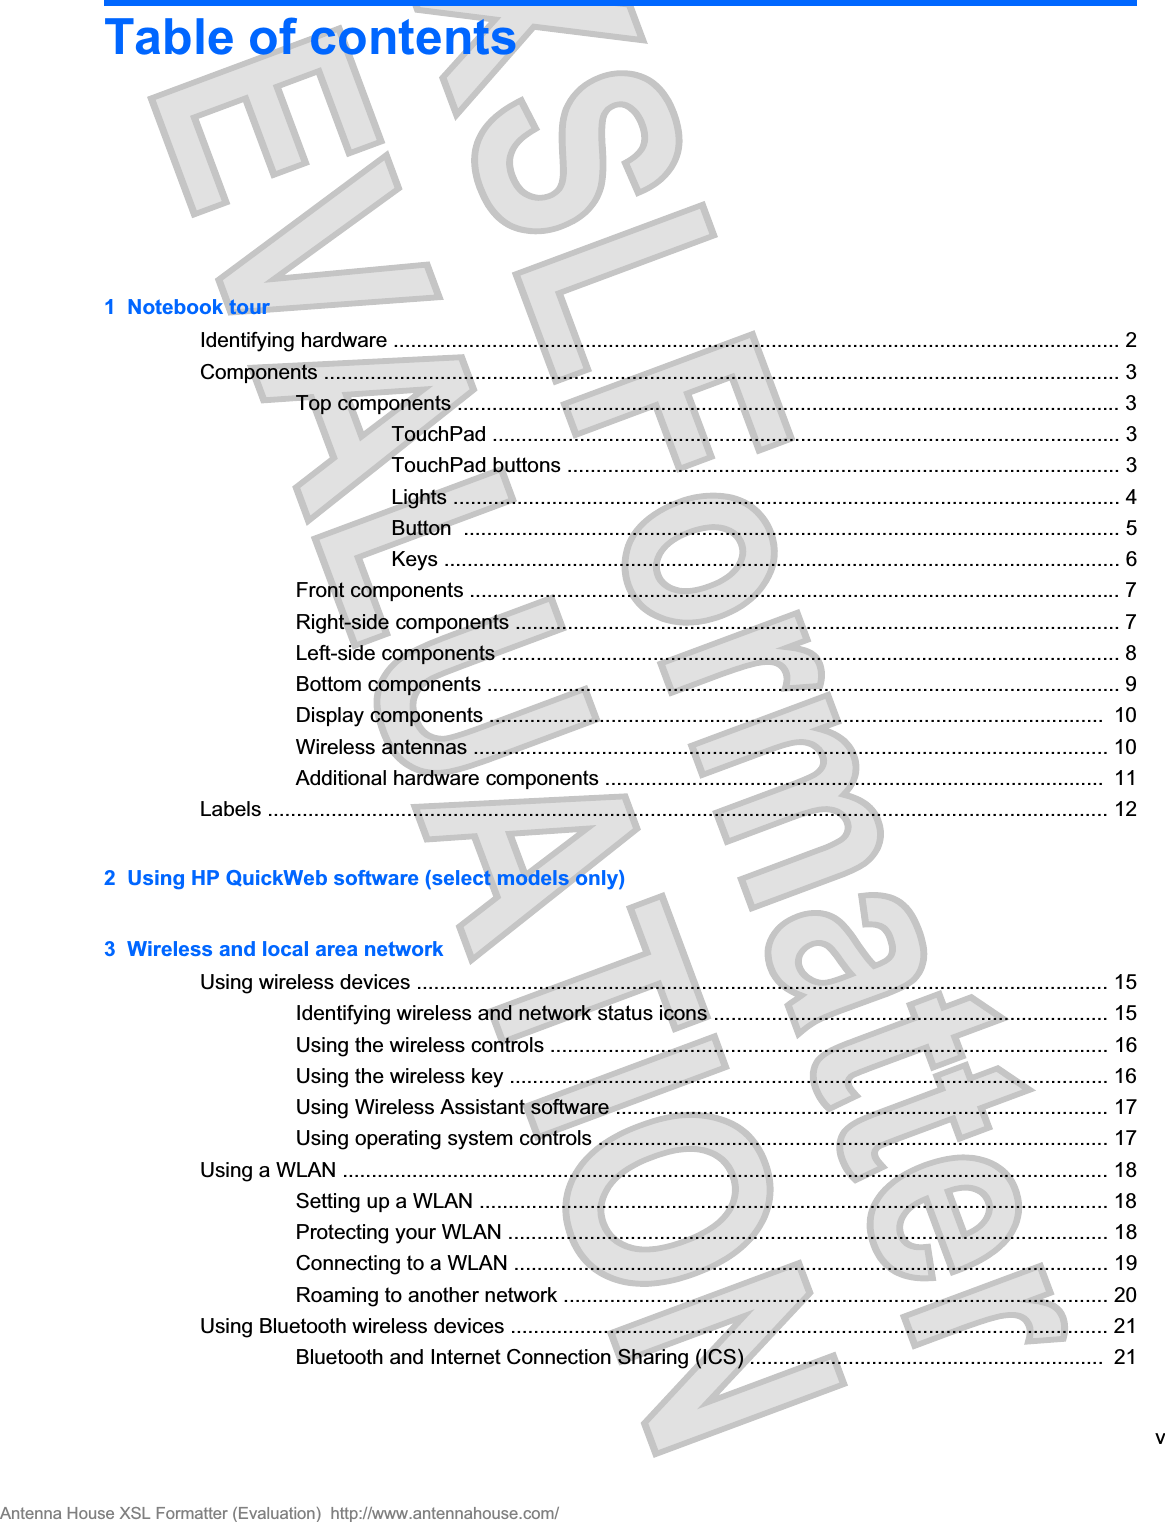 Intel 112BNHU Intel Centrino Wireless-N 1000 User Manual